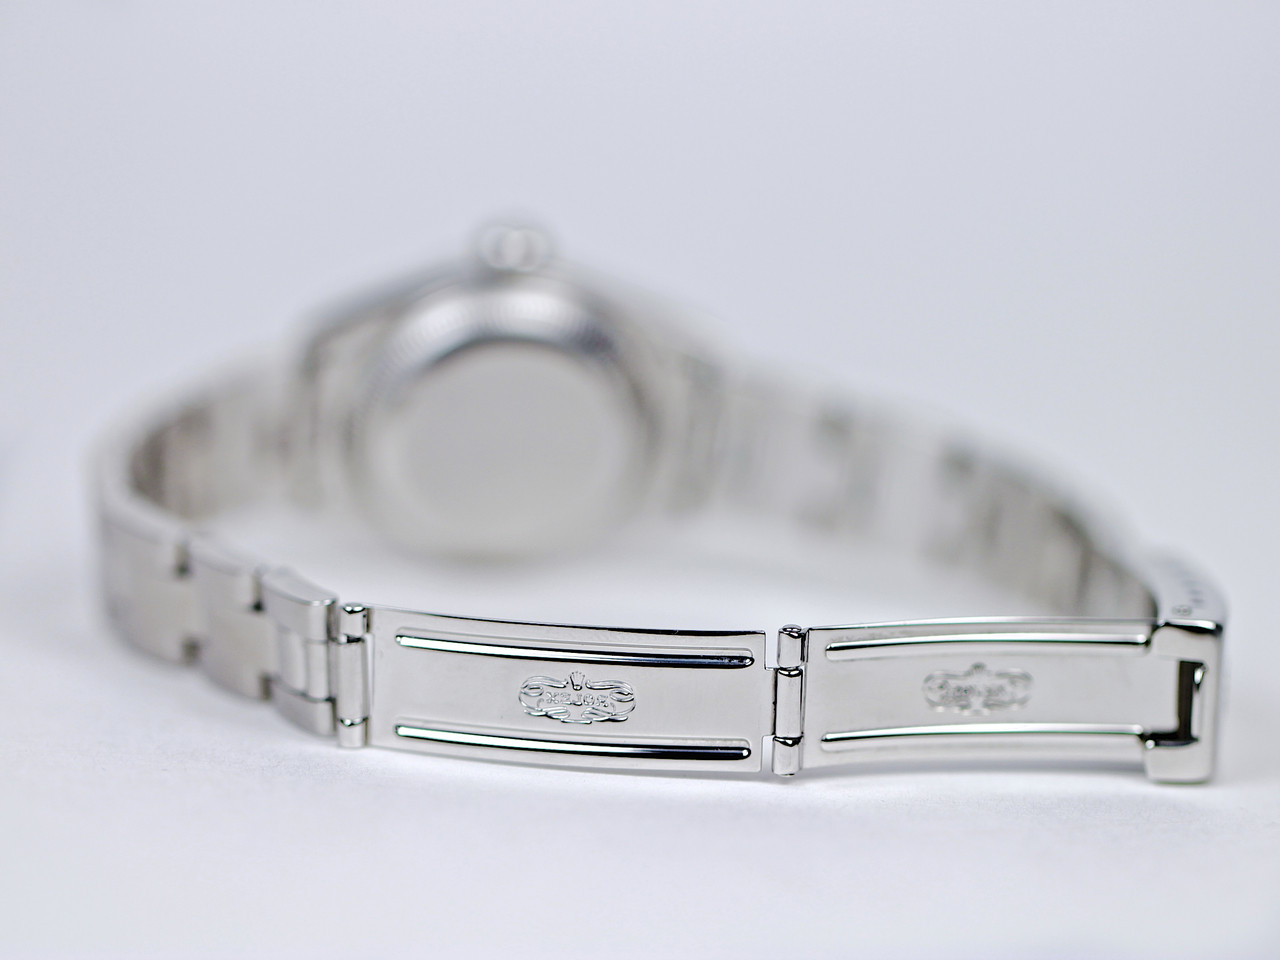 Clasp - Rolex Watch - Date Ladies Steel R69160A10B7834 - www.Legendoftime.com Chicago Watch Center